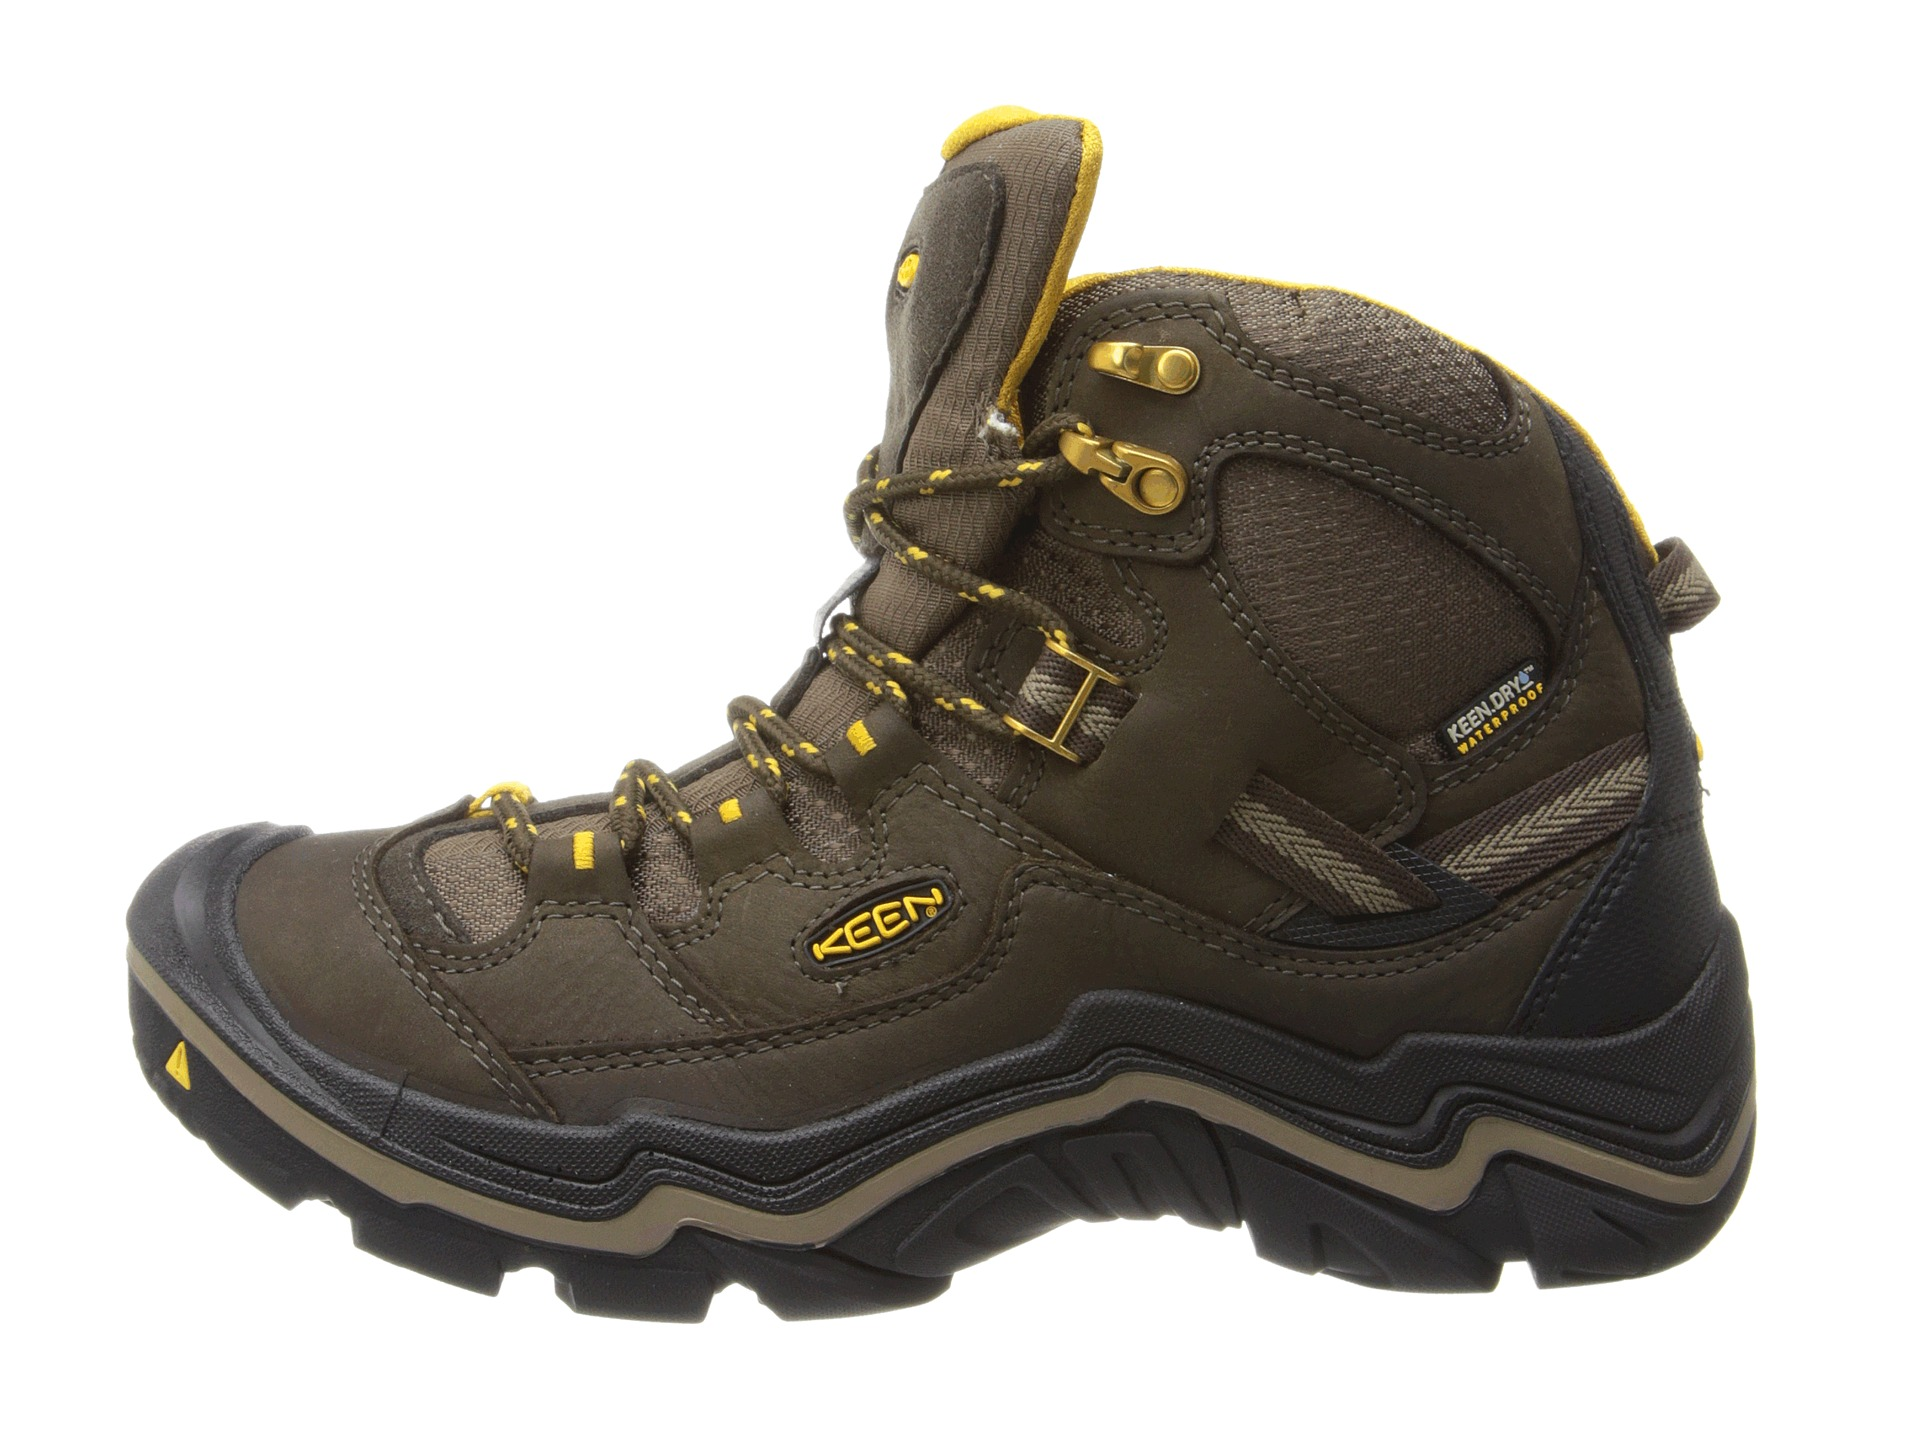 Hiking Shoes For Men Reviews Images Ideas Home Office